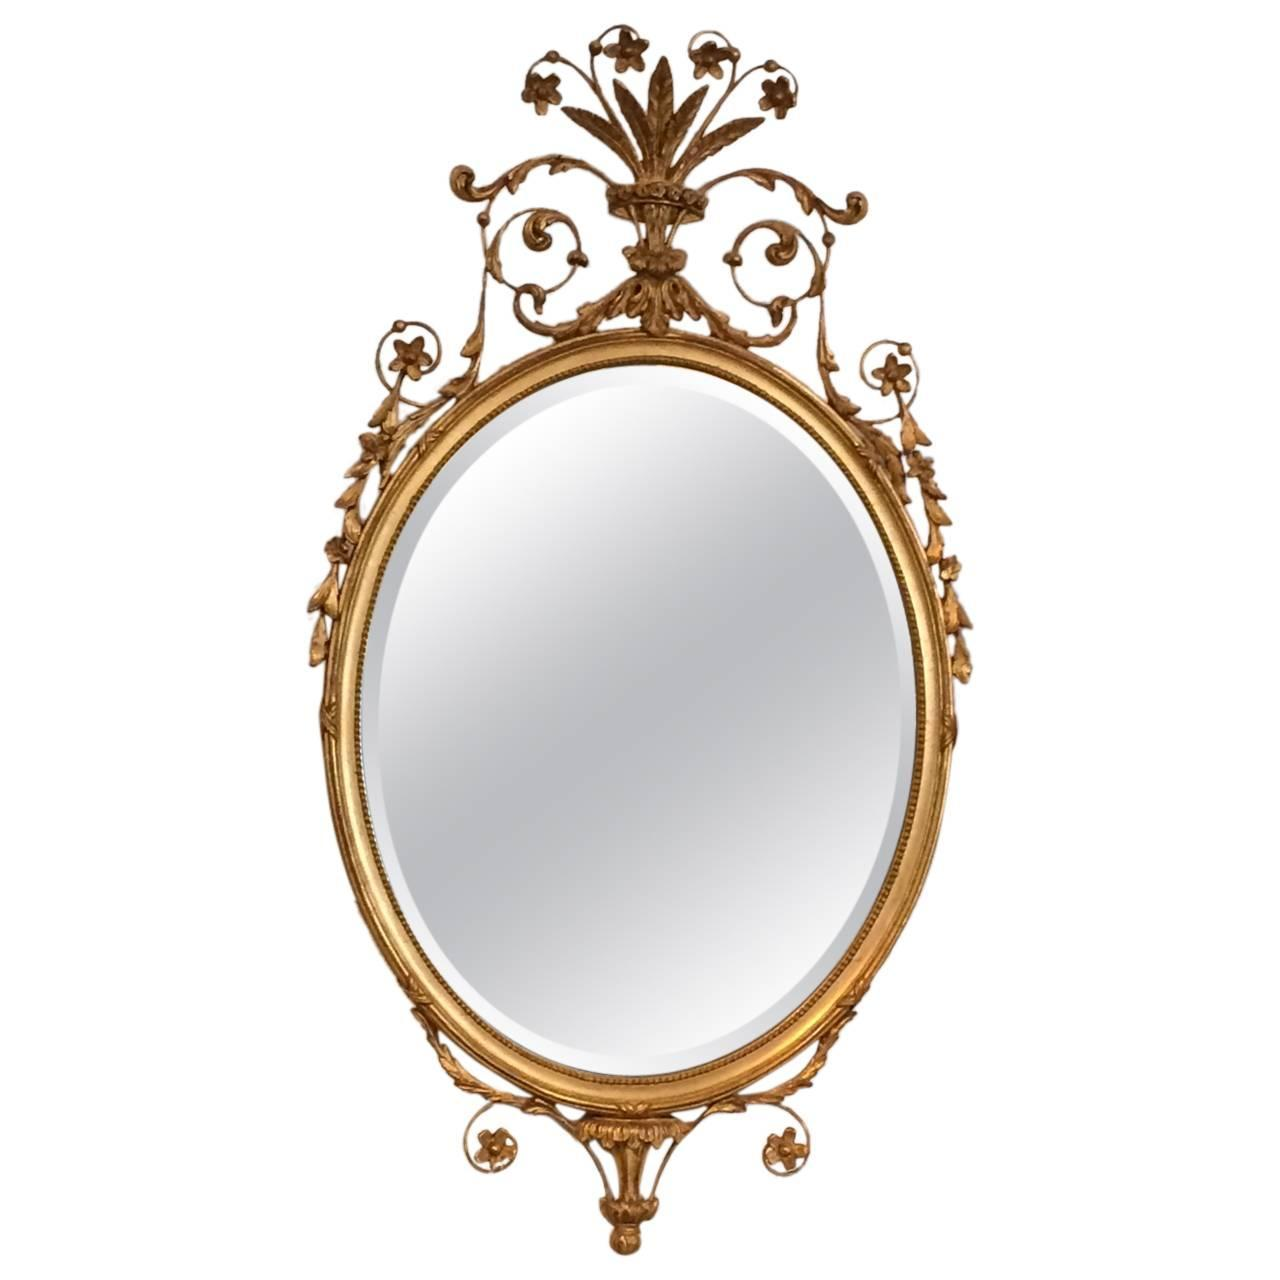 Fancy french louis xvi style oval gilded mirror at 1stdibs for Fancy mirror